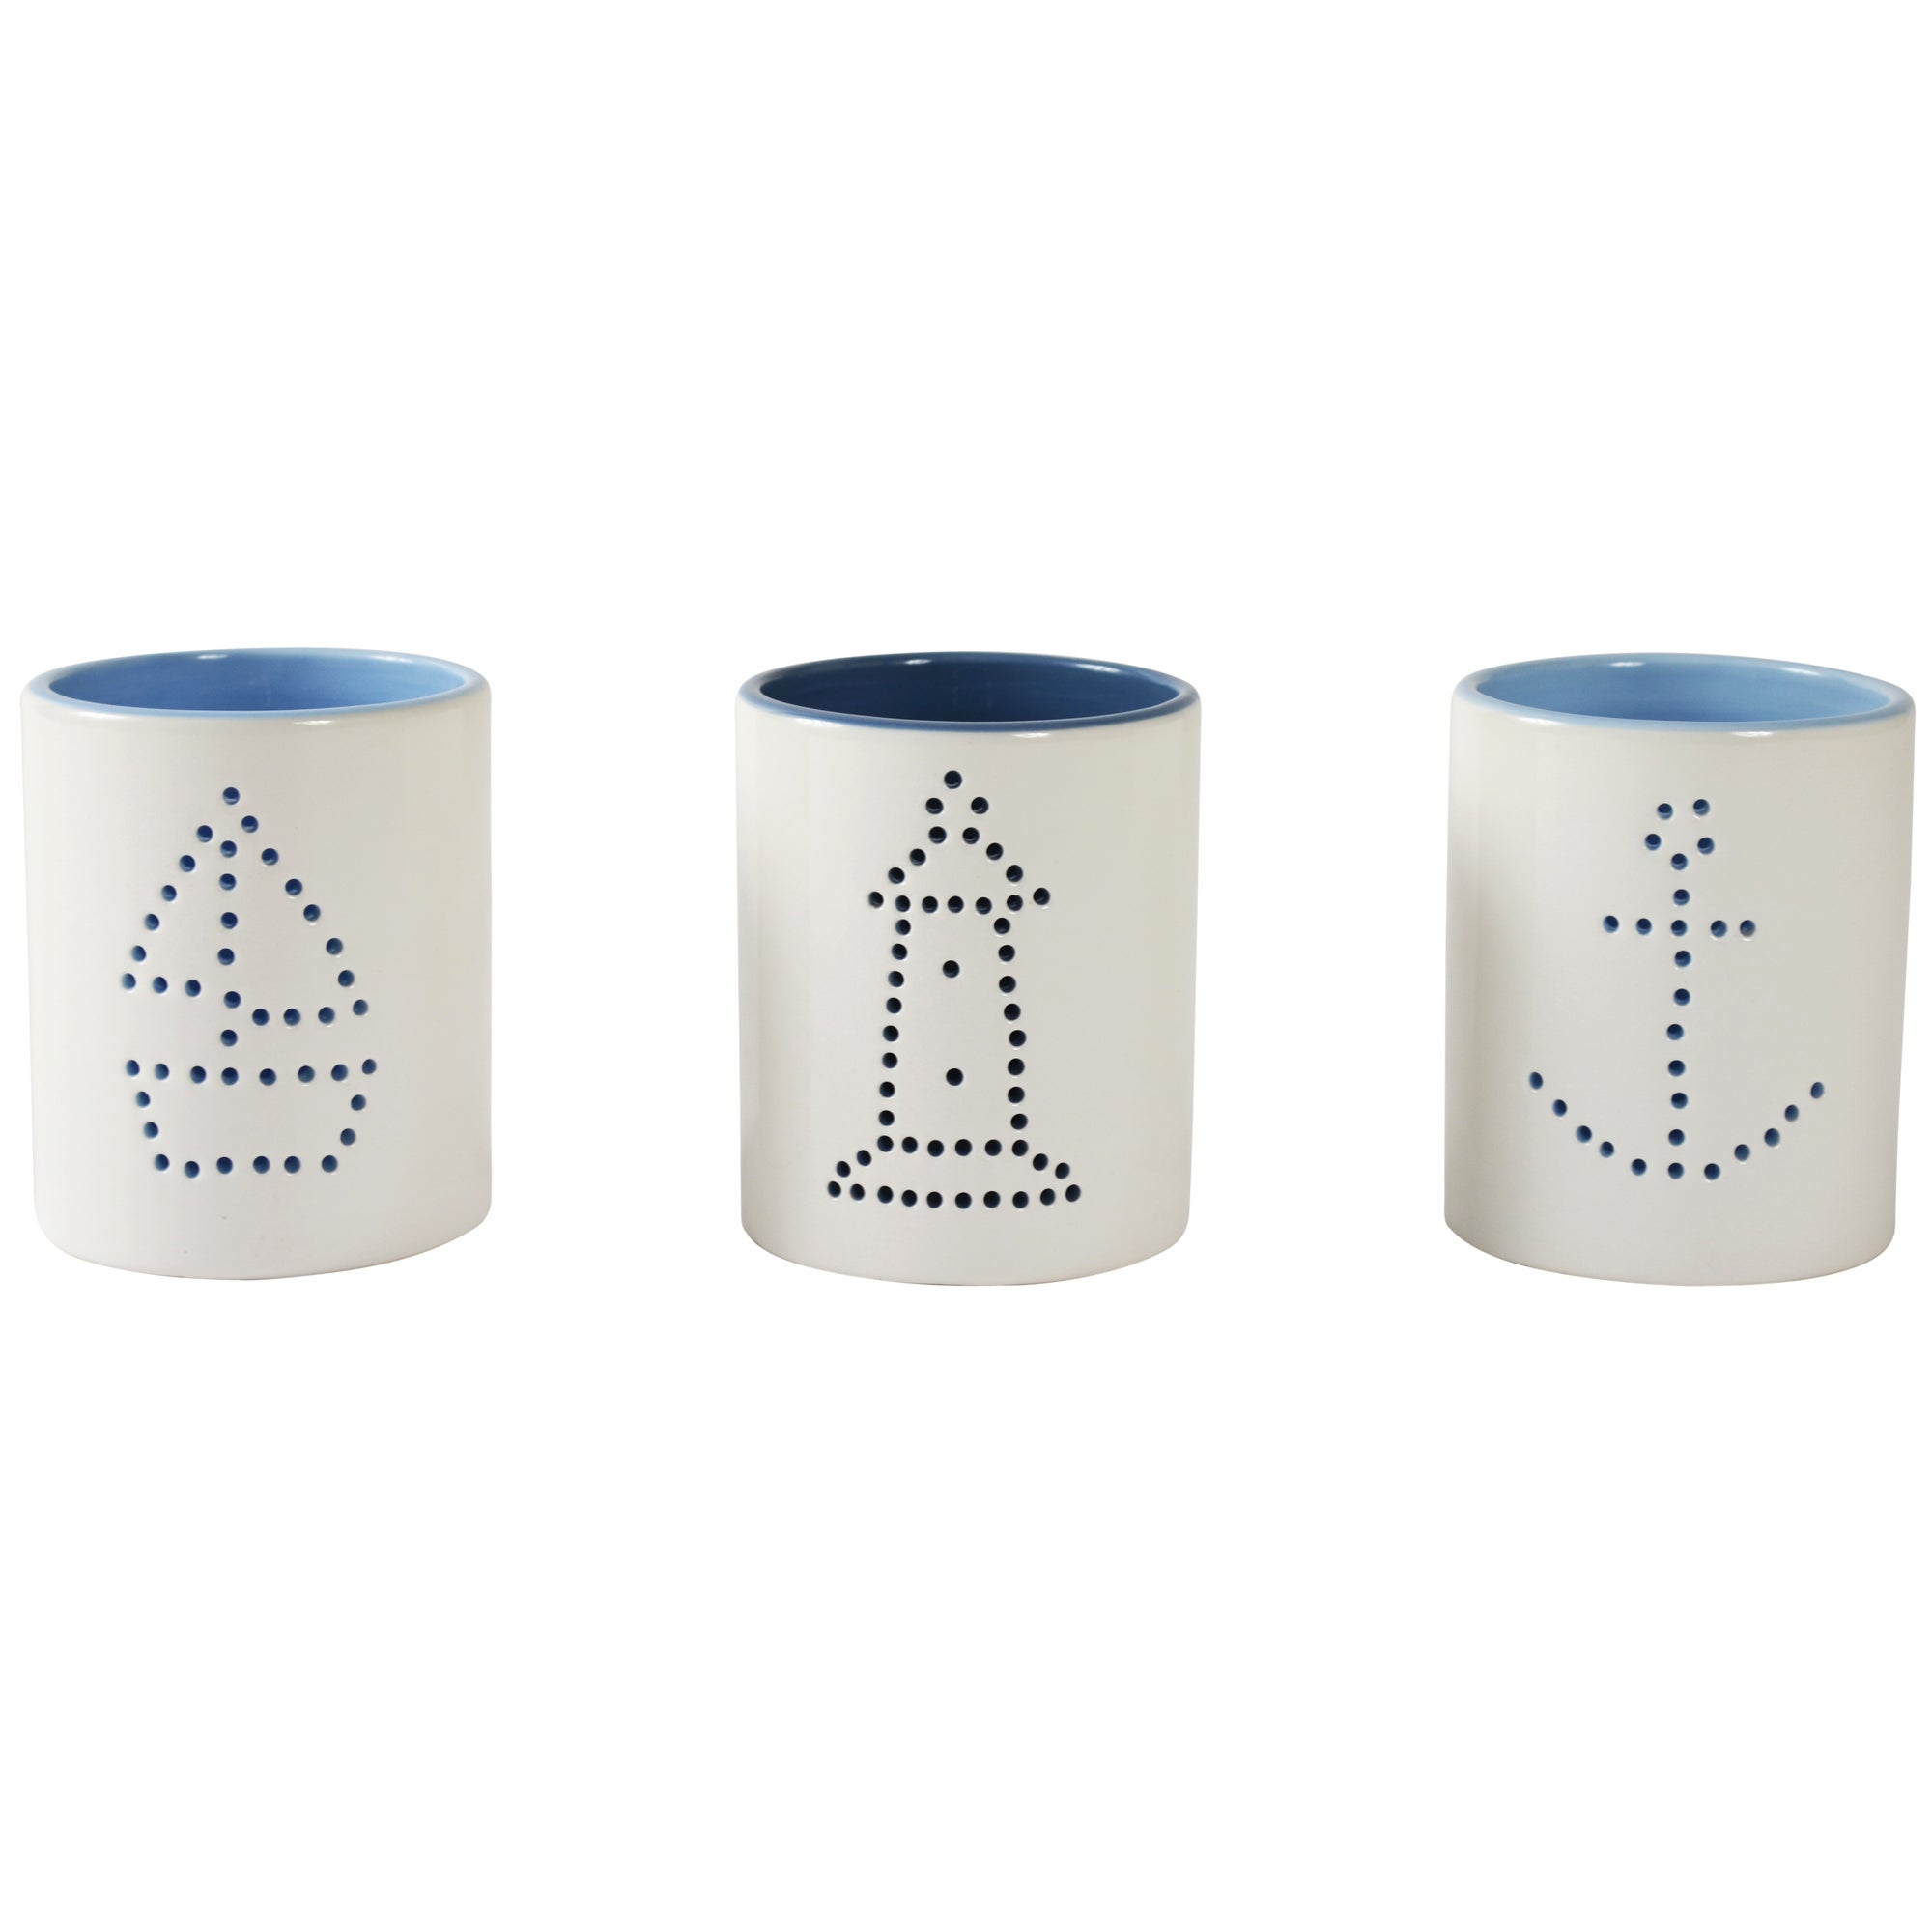 Nautical Collection Set of 3 Tea Light Holders